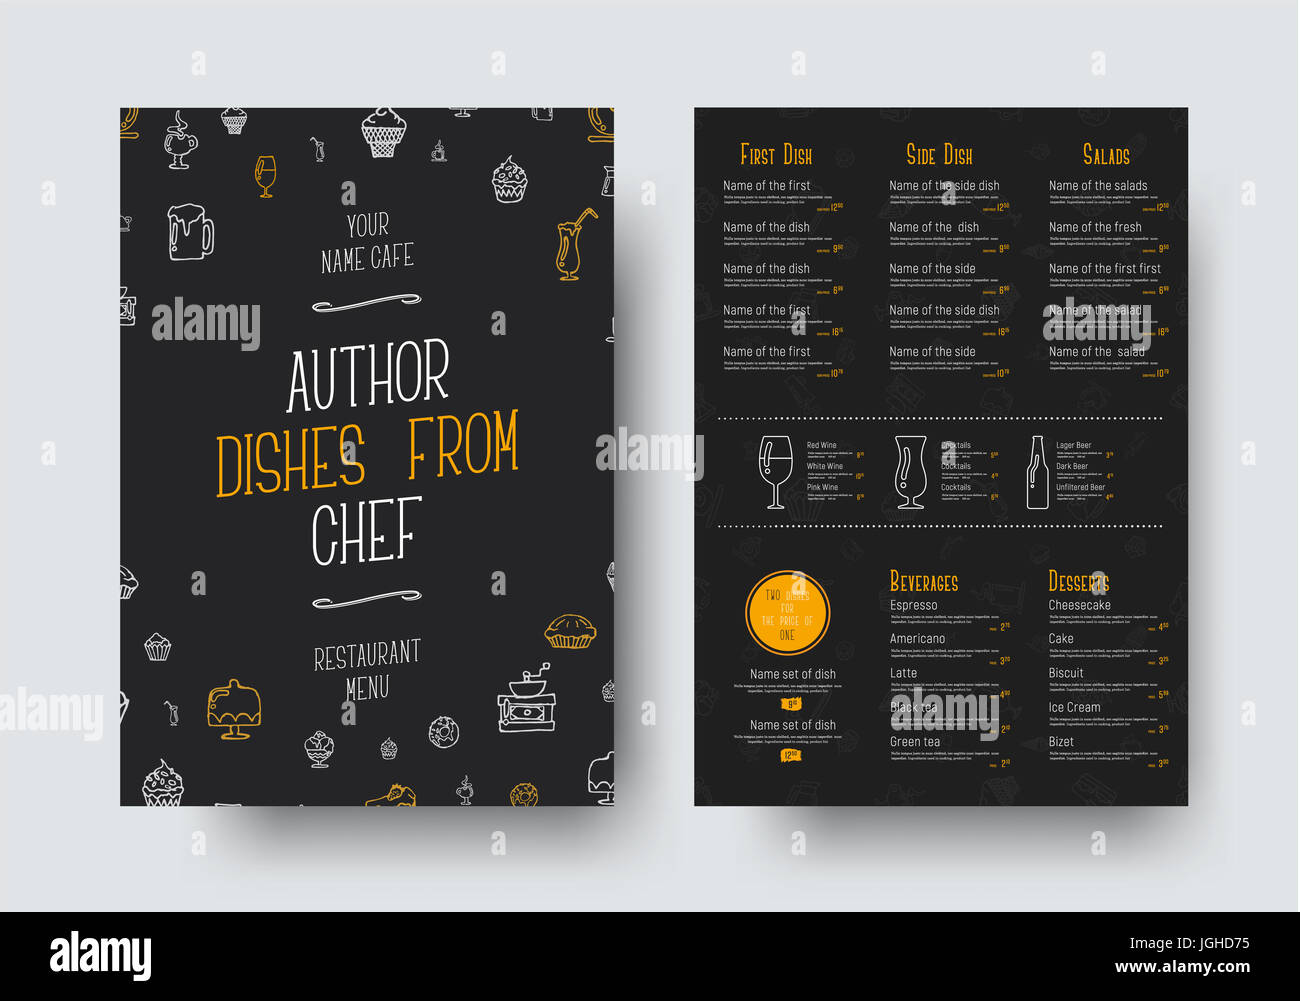 design of a black menu for a restaurant or cafe a template of the